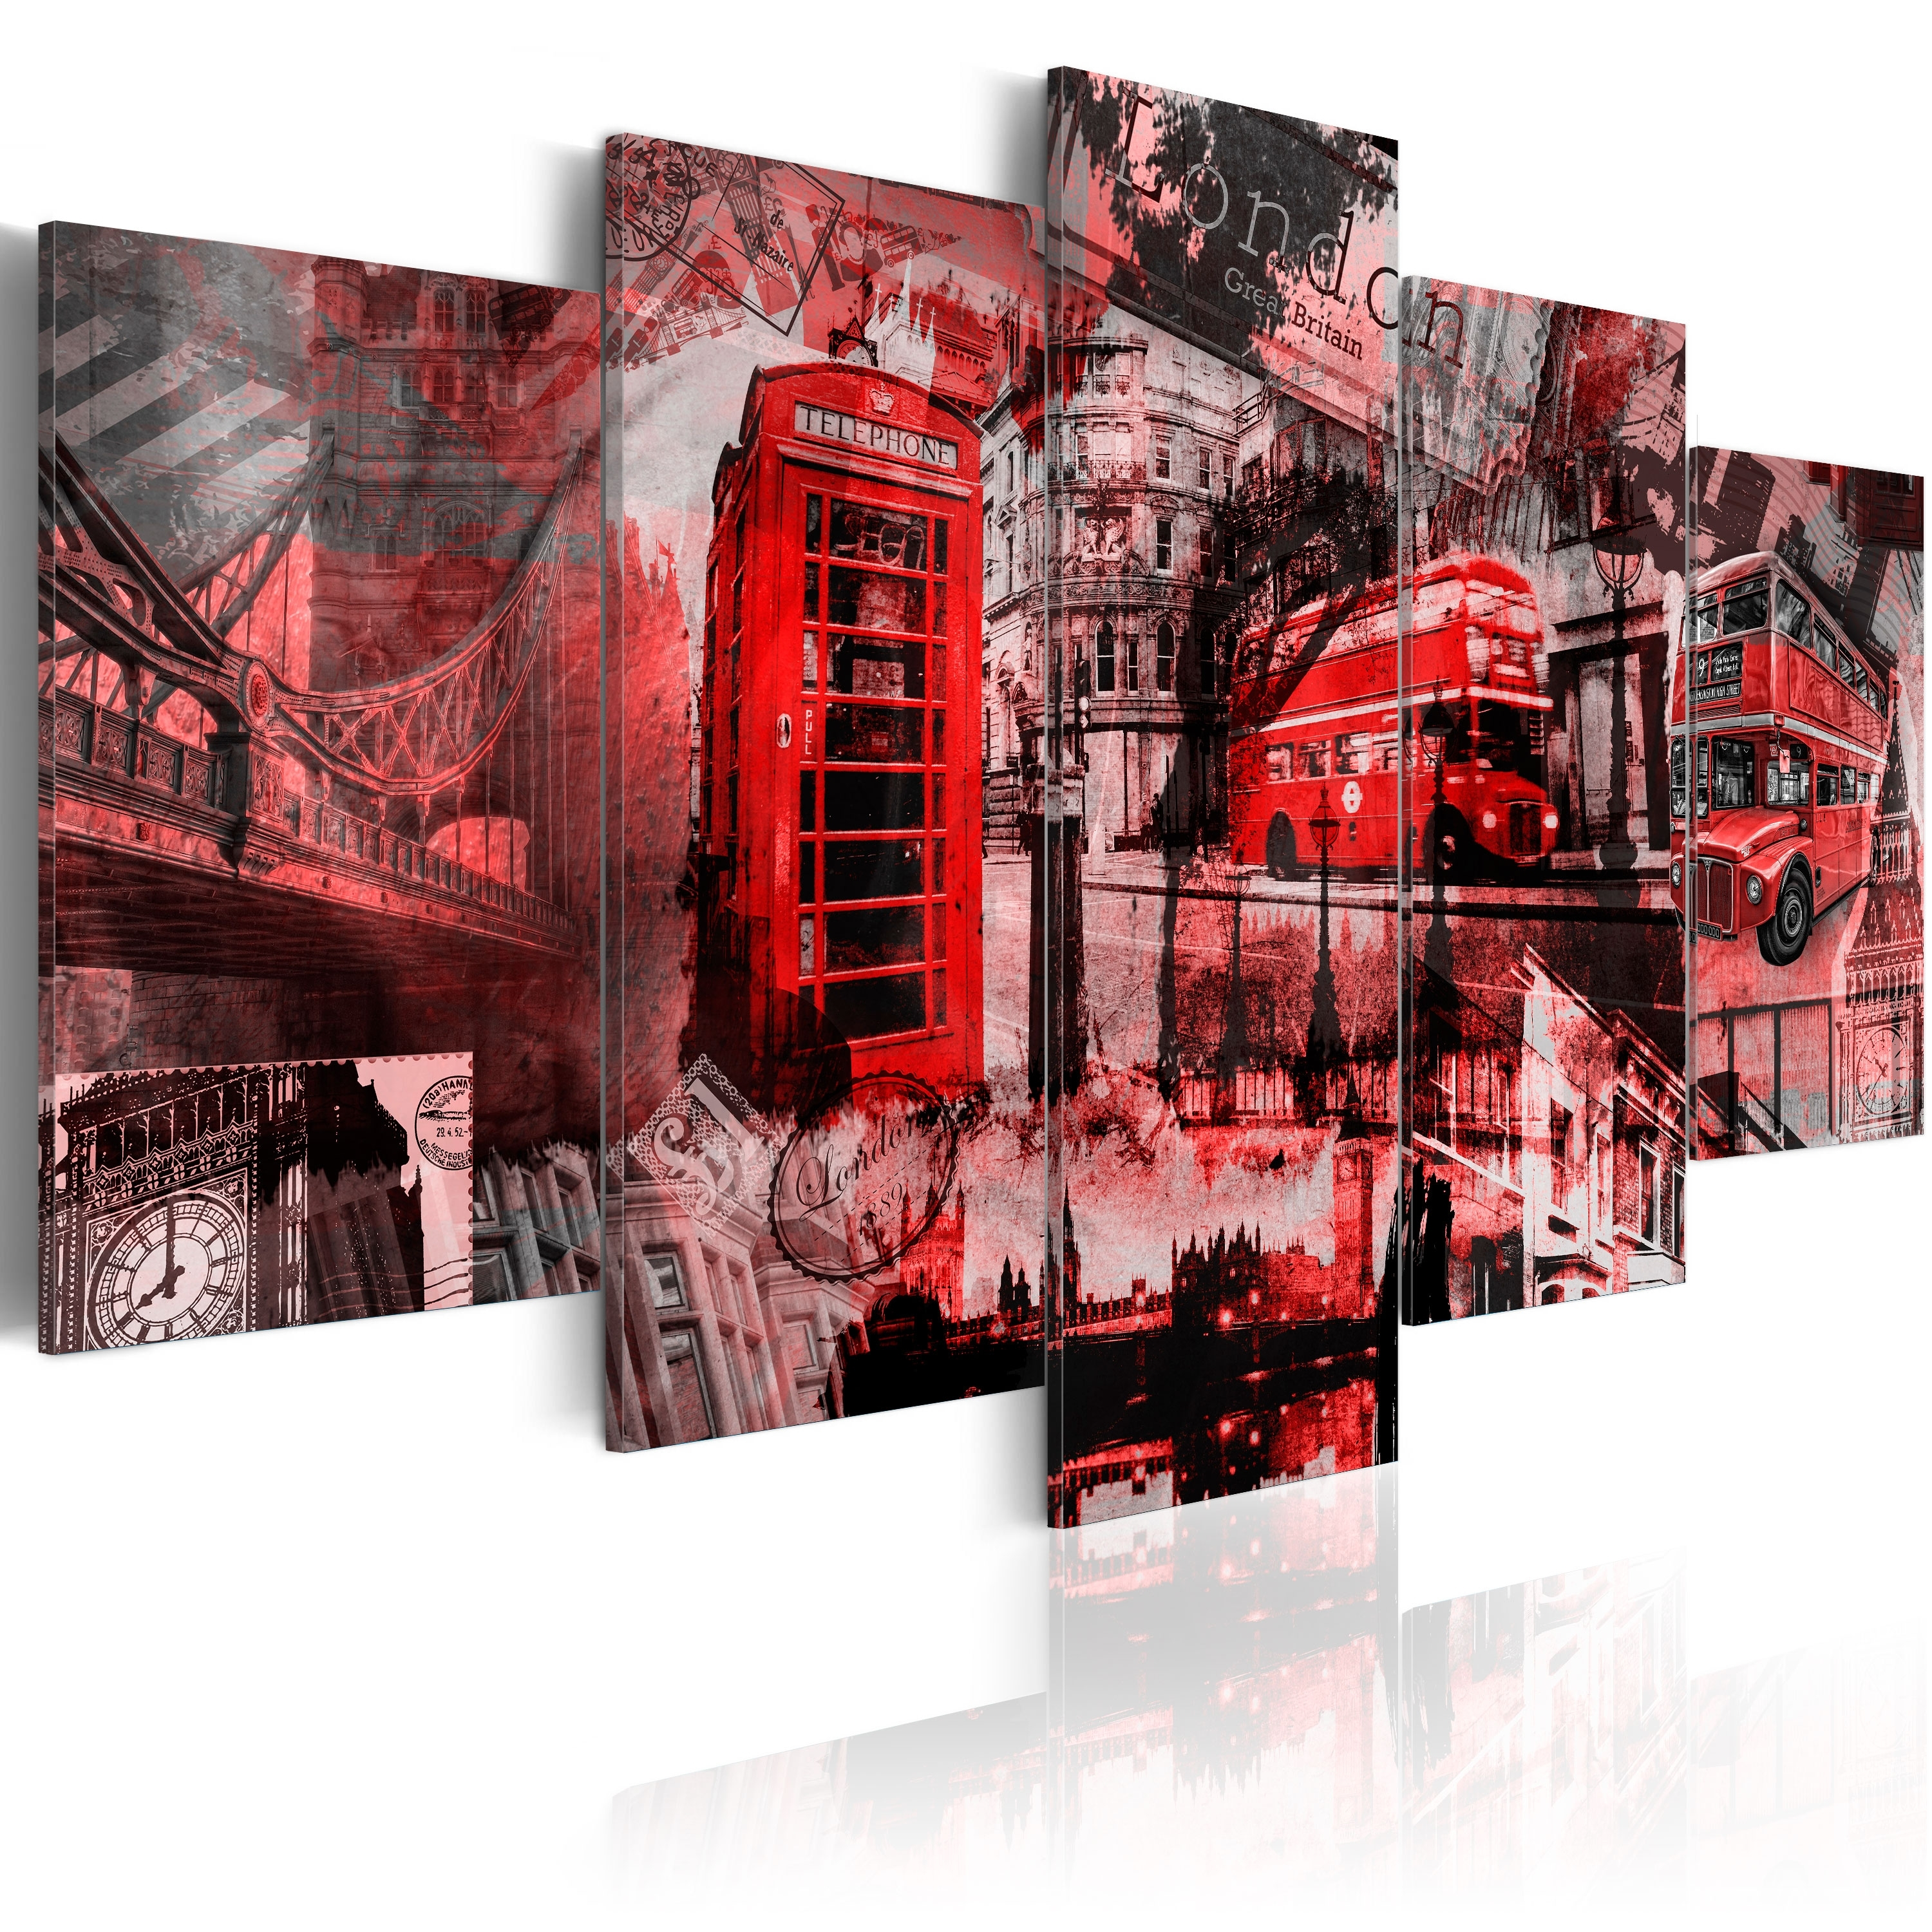 Canvas Wall Art Print Image Picture Photo London 030117 5 | Ebay Throughout 2018 London Wall Art (View 4 of 20)